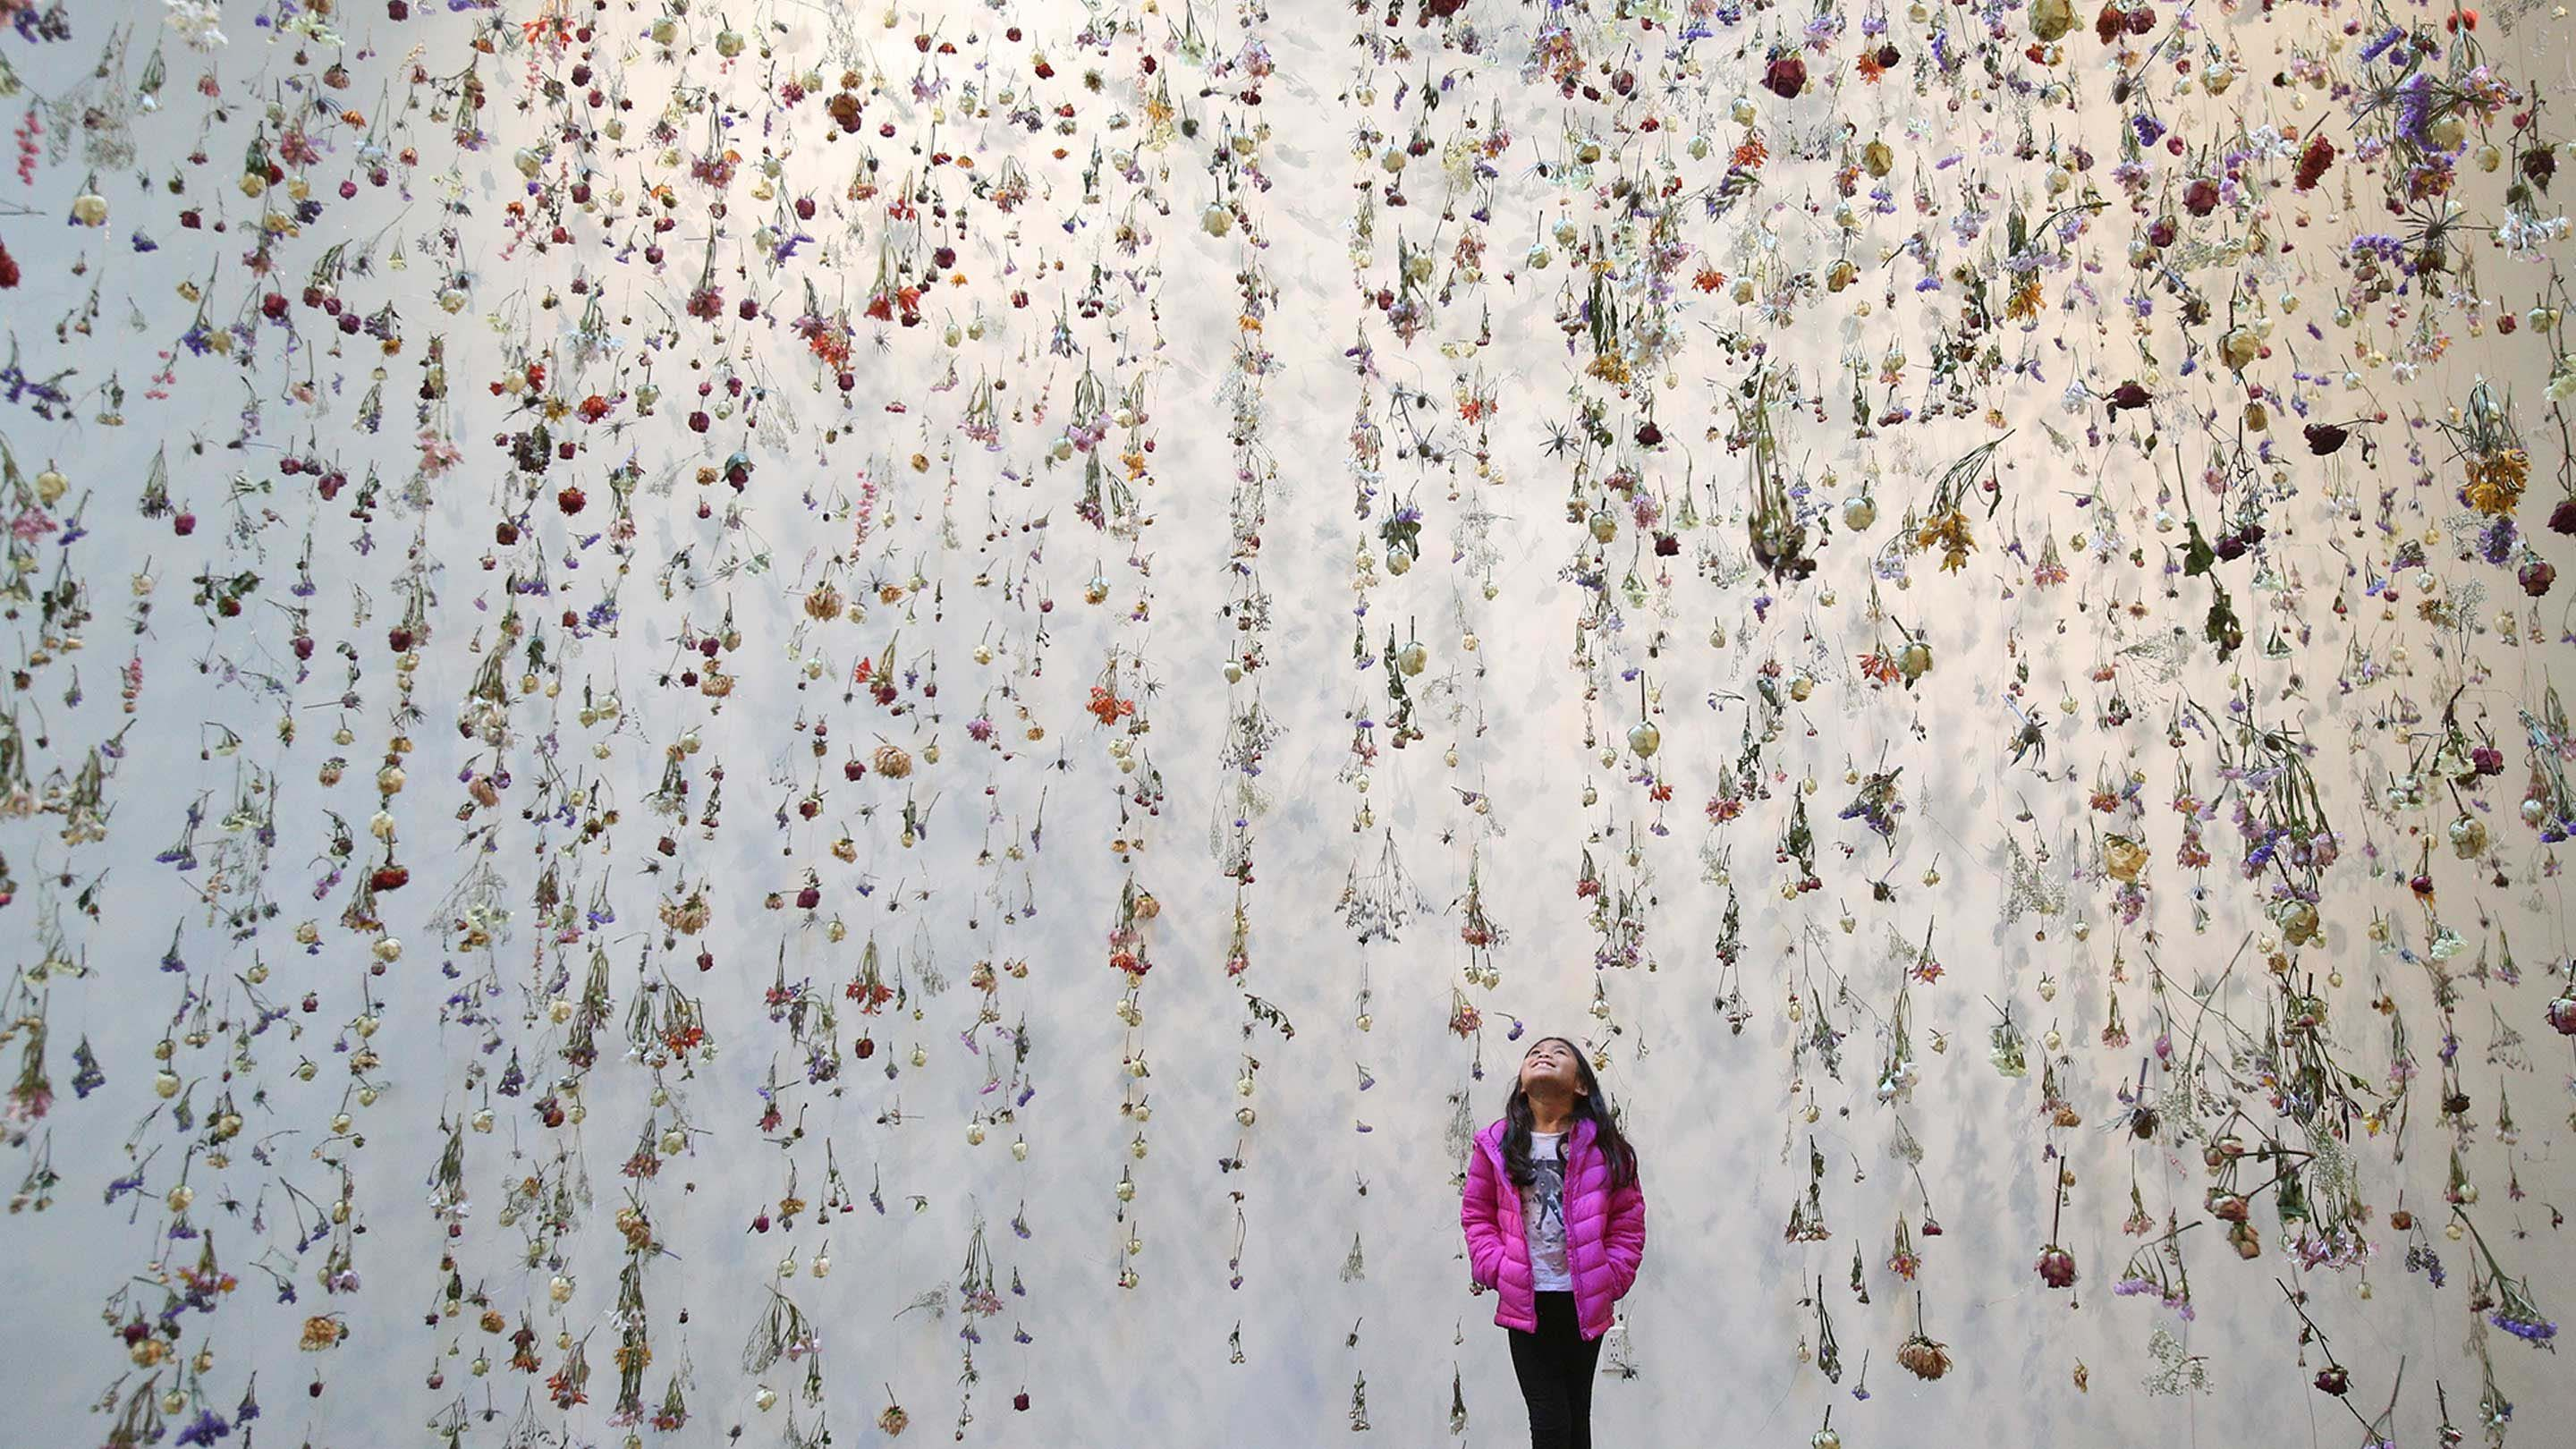 photo of a student in gallery filled with hanging flowers